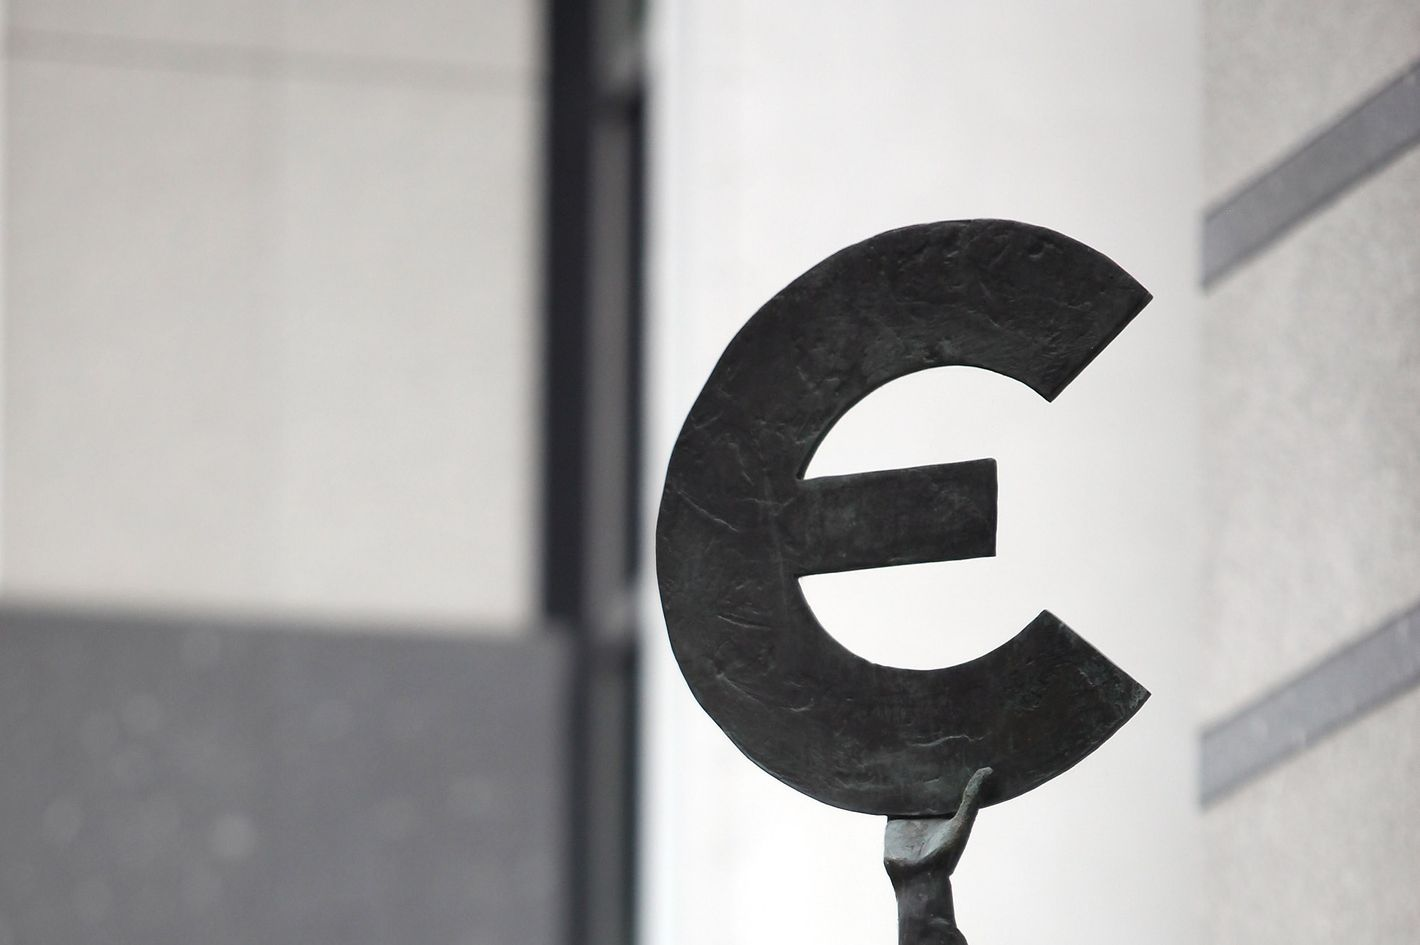 """The """"Europe"""" sculpture by Belgian artist May Claerhout, showing a woman holding up the symbol of the Euro, stands outside the European Parliament building."""